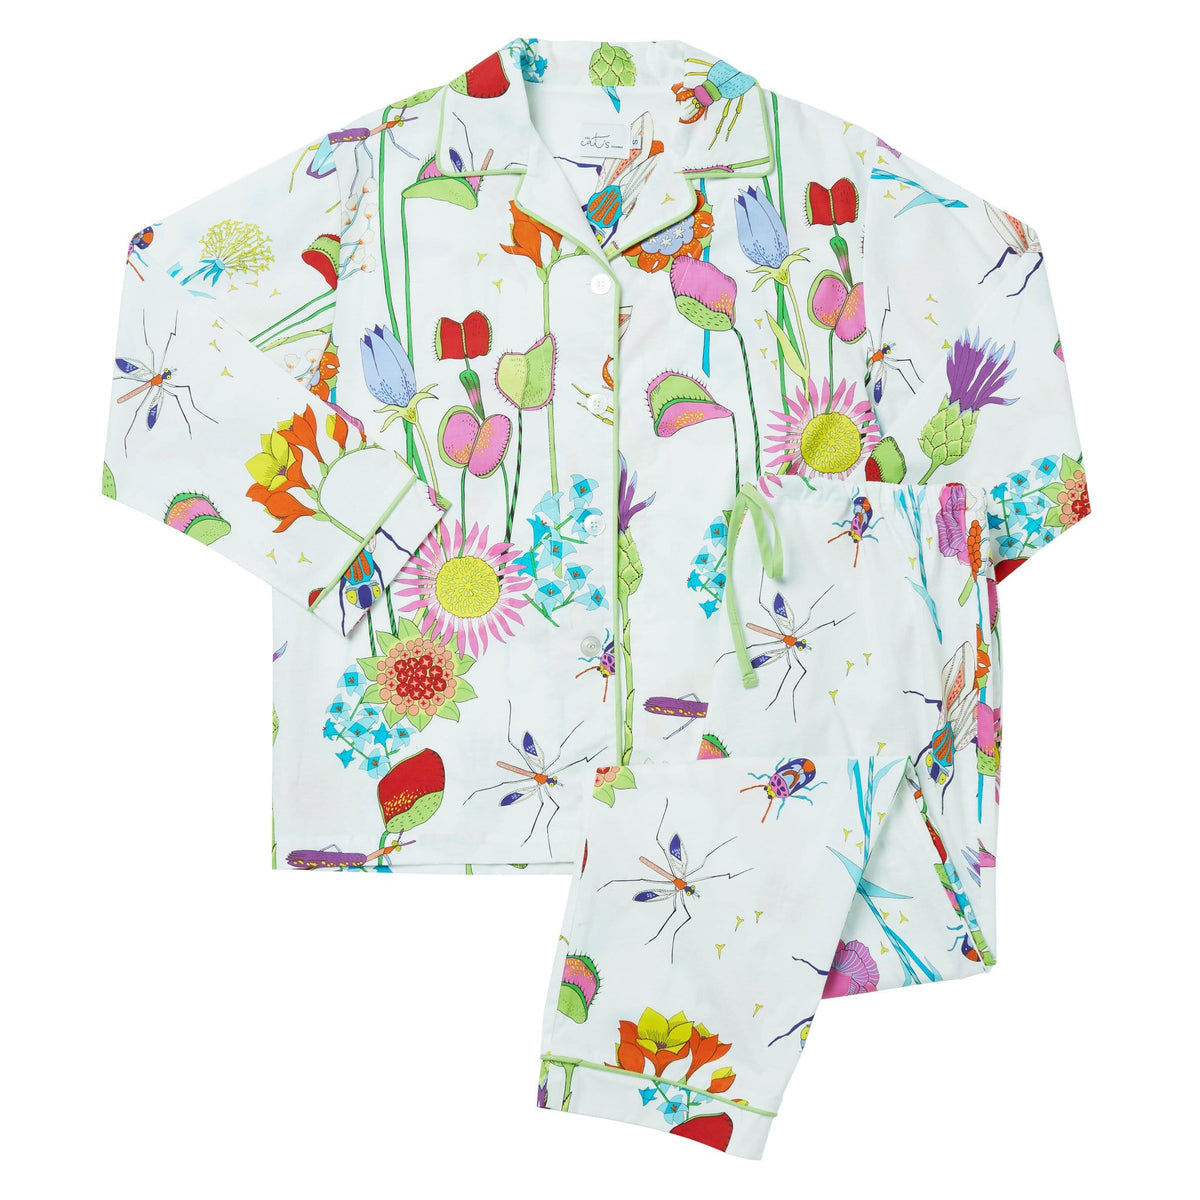 A Bug's Life Cotton Pajamatest